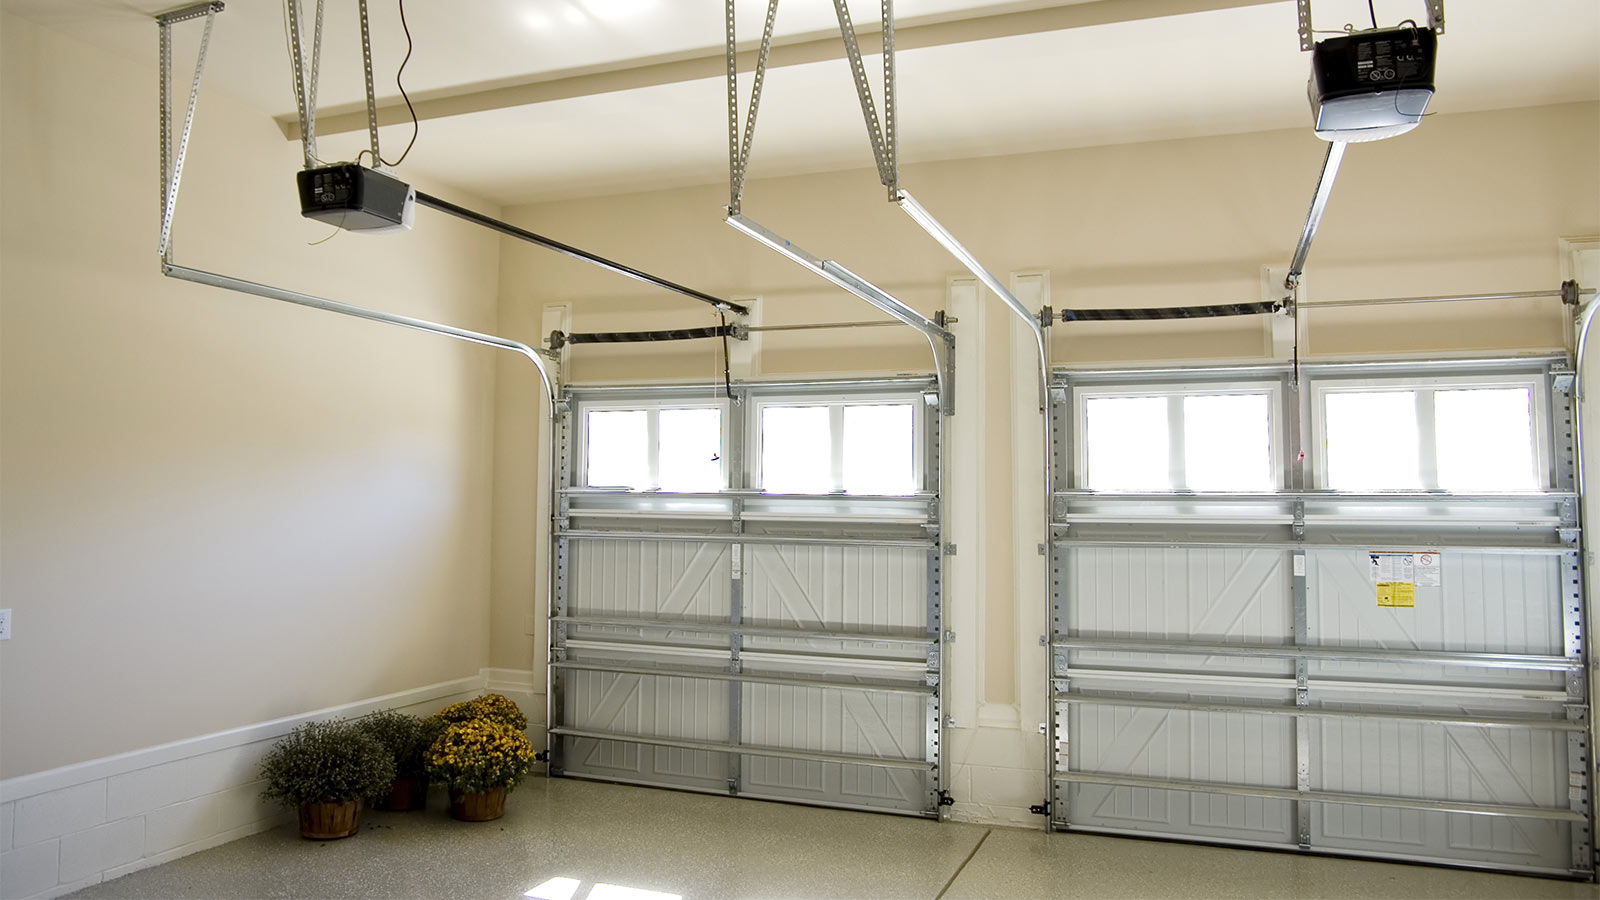 Sectional Garage Doors from Electric Gates Clacton suppliers.